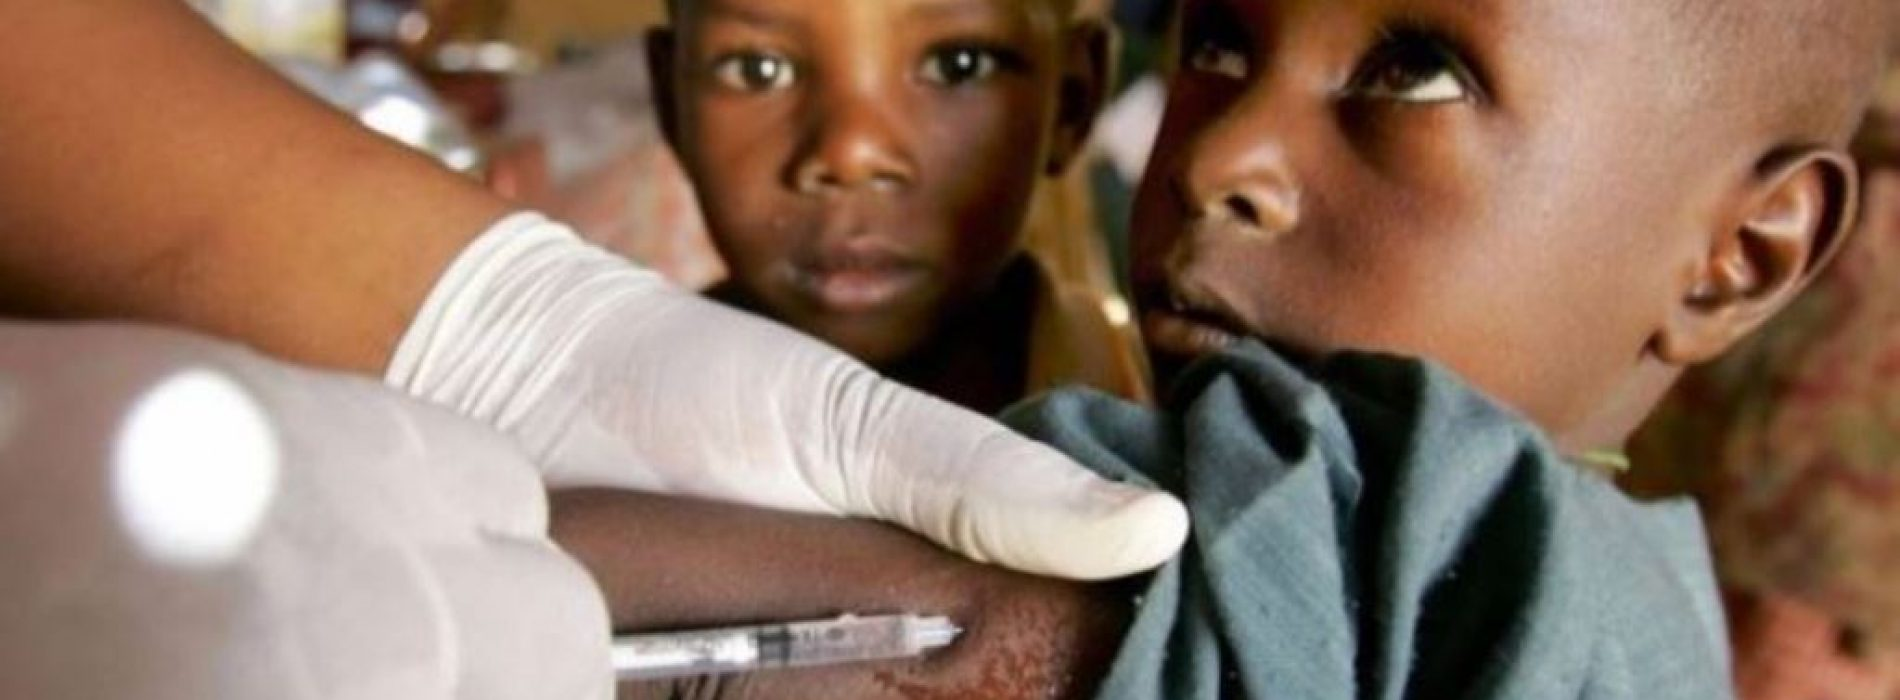 FG sets up emergency centre for routine immunisation